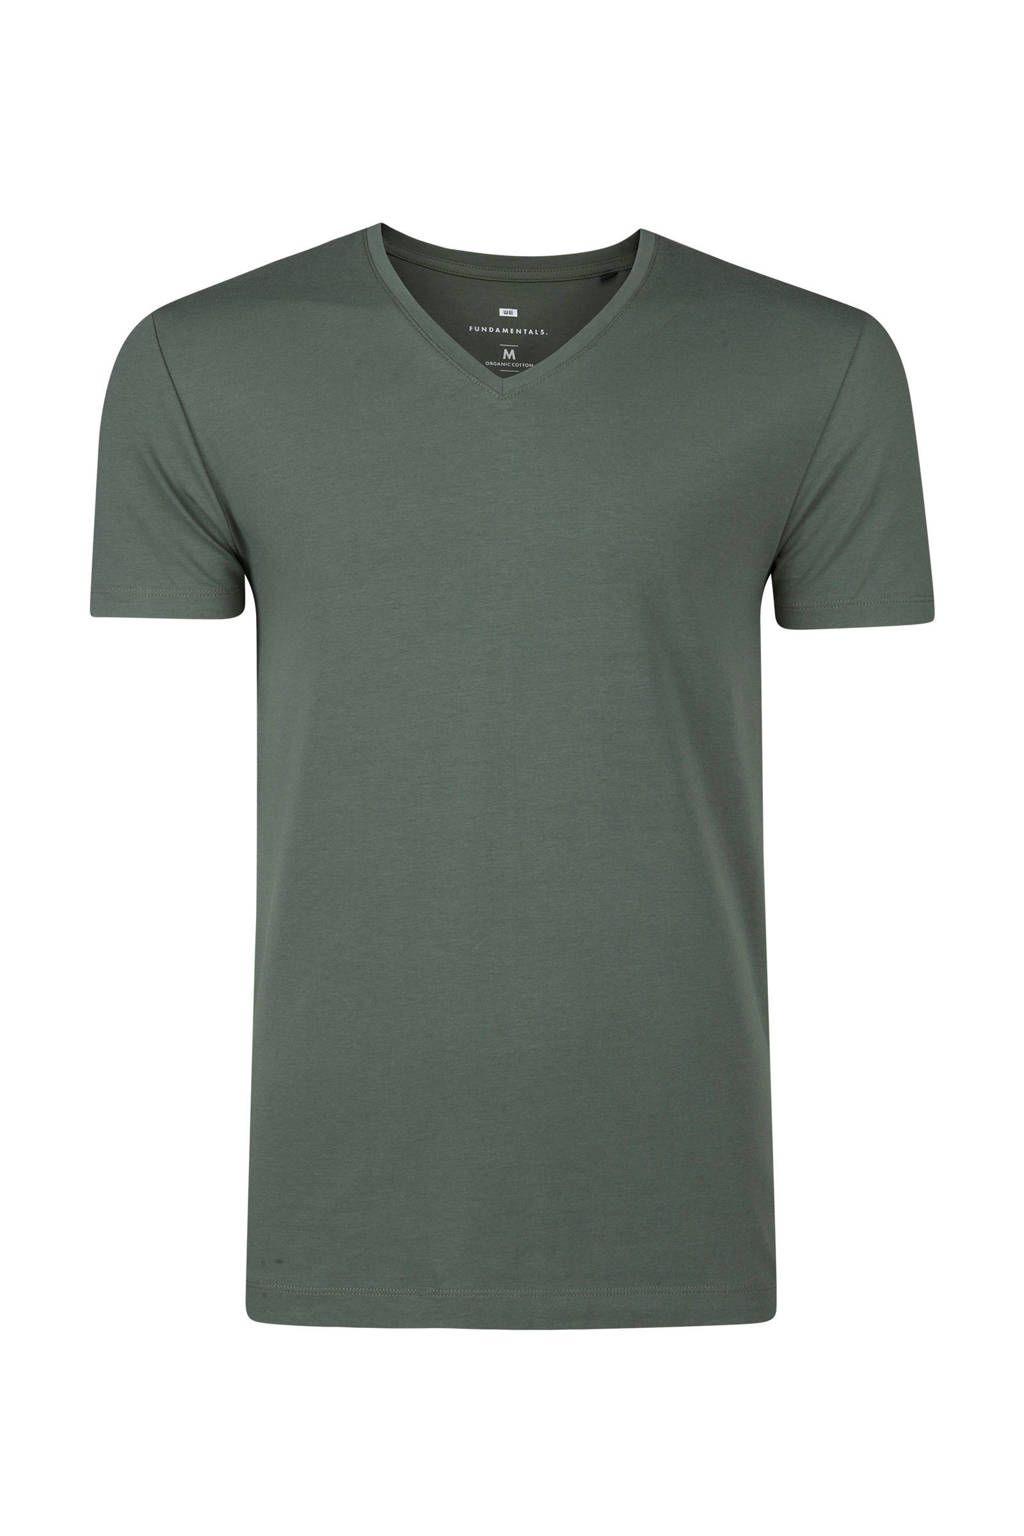 WE Fashion Fundamental slim fit T-shirt, Groen